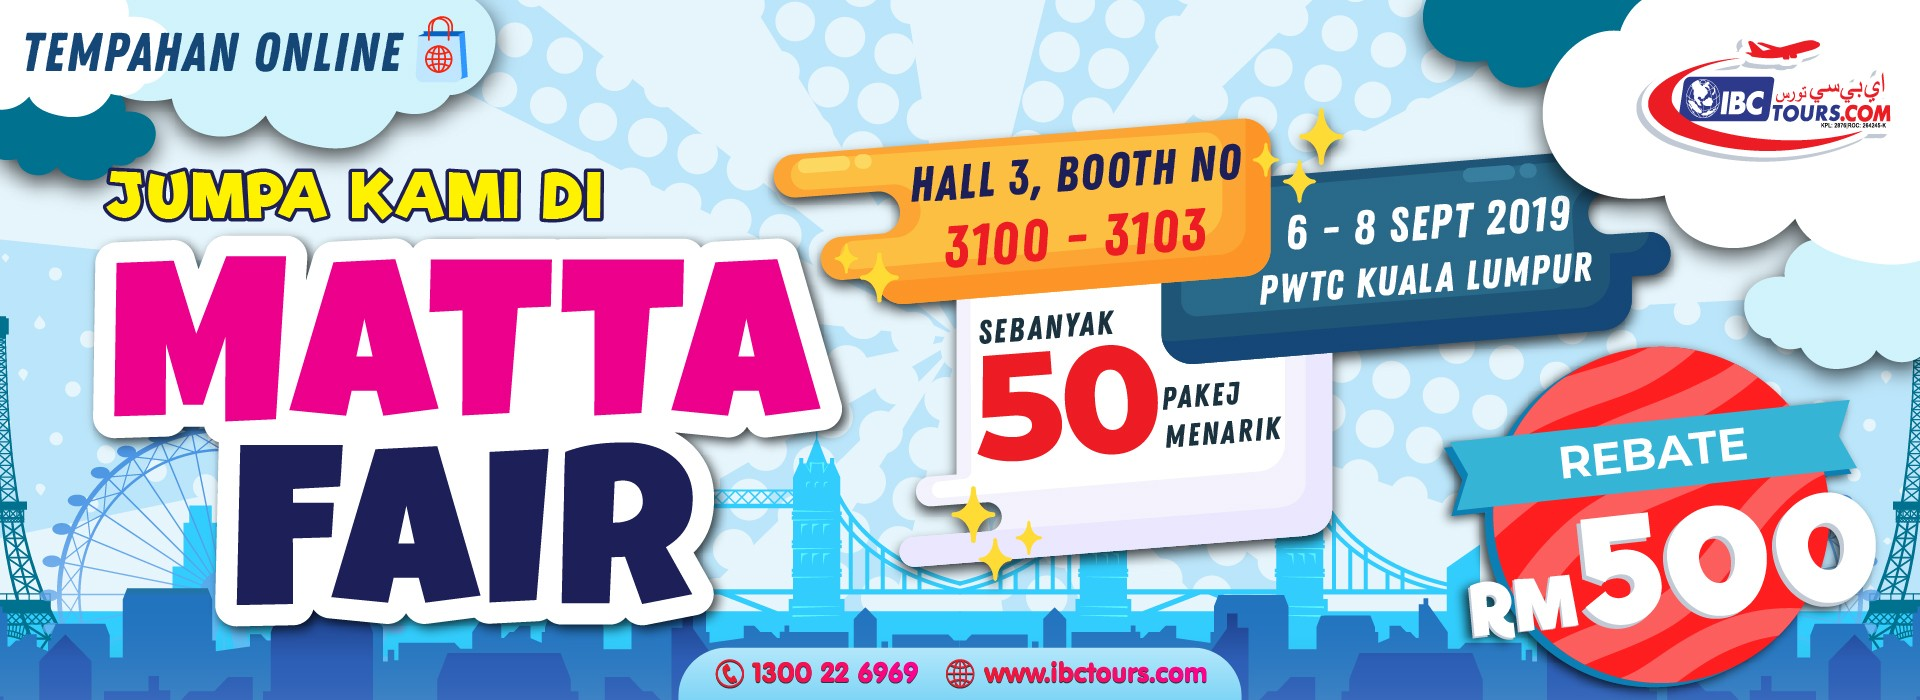 Matta Fair Booth No